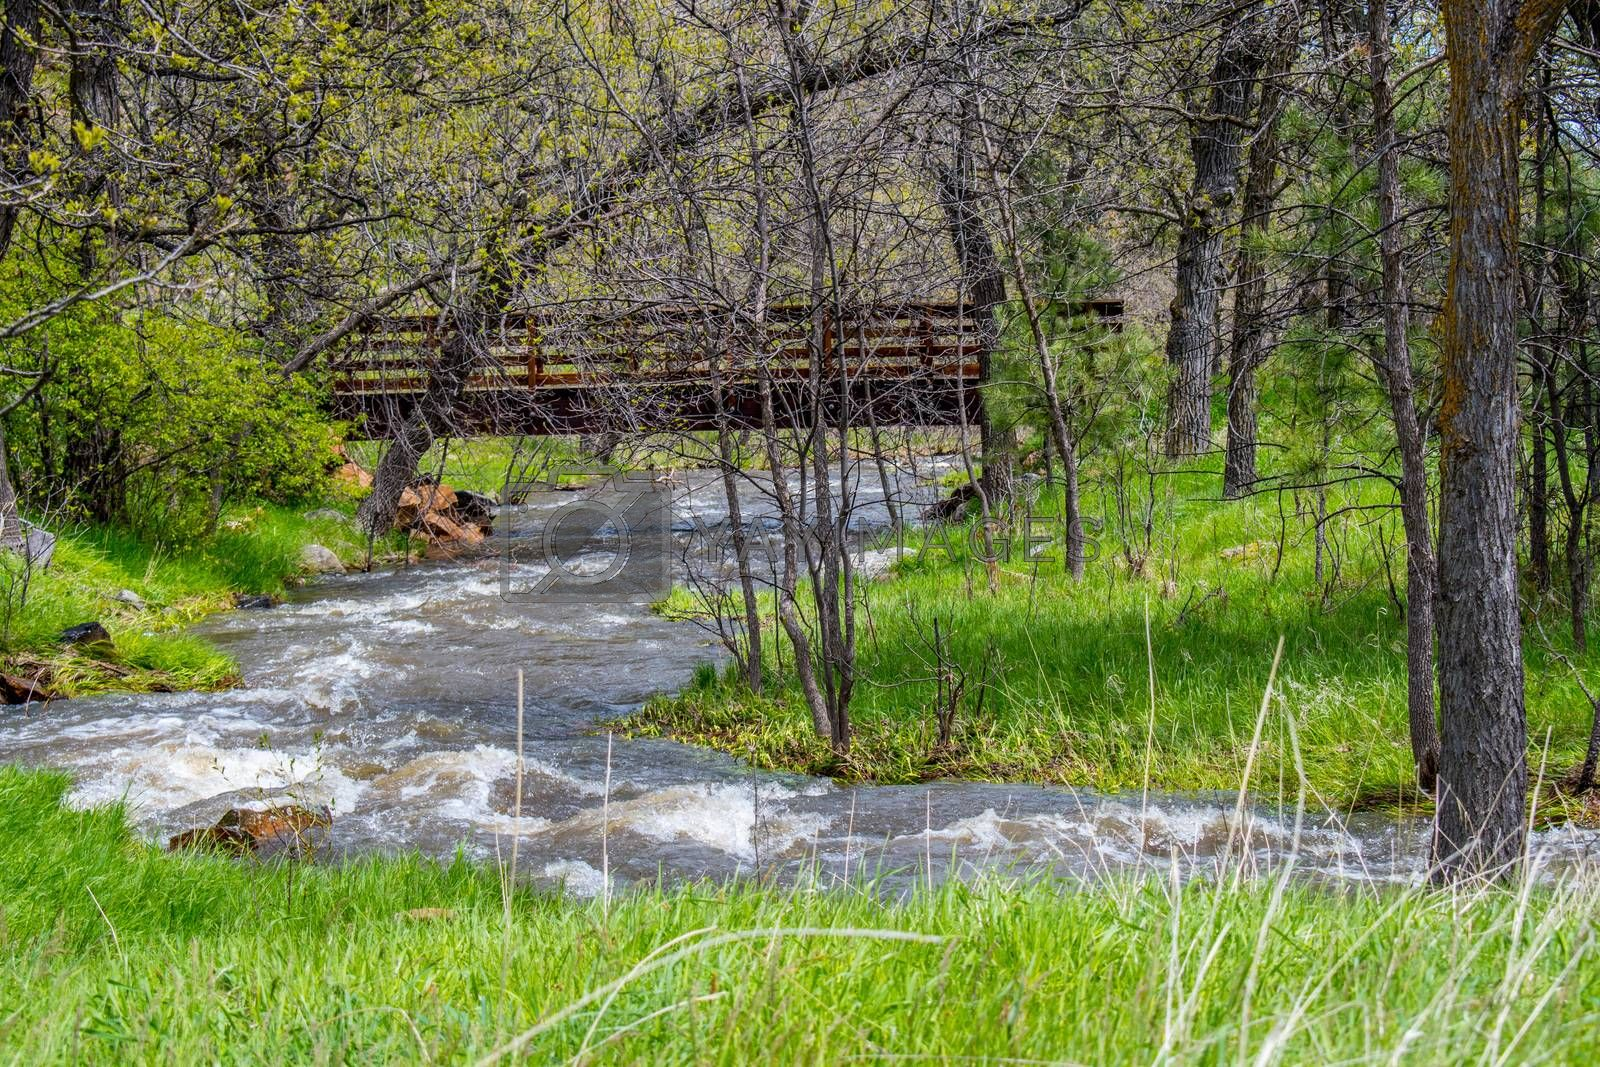 The refreshing flow of natural water resource coming from the Cheyenne River